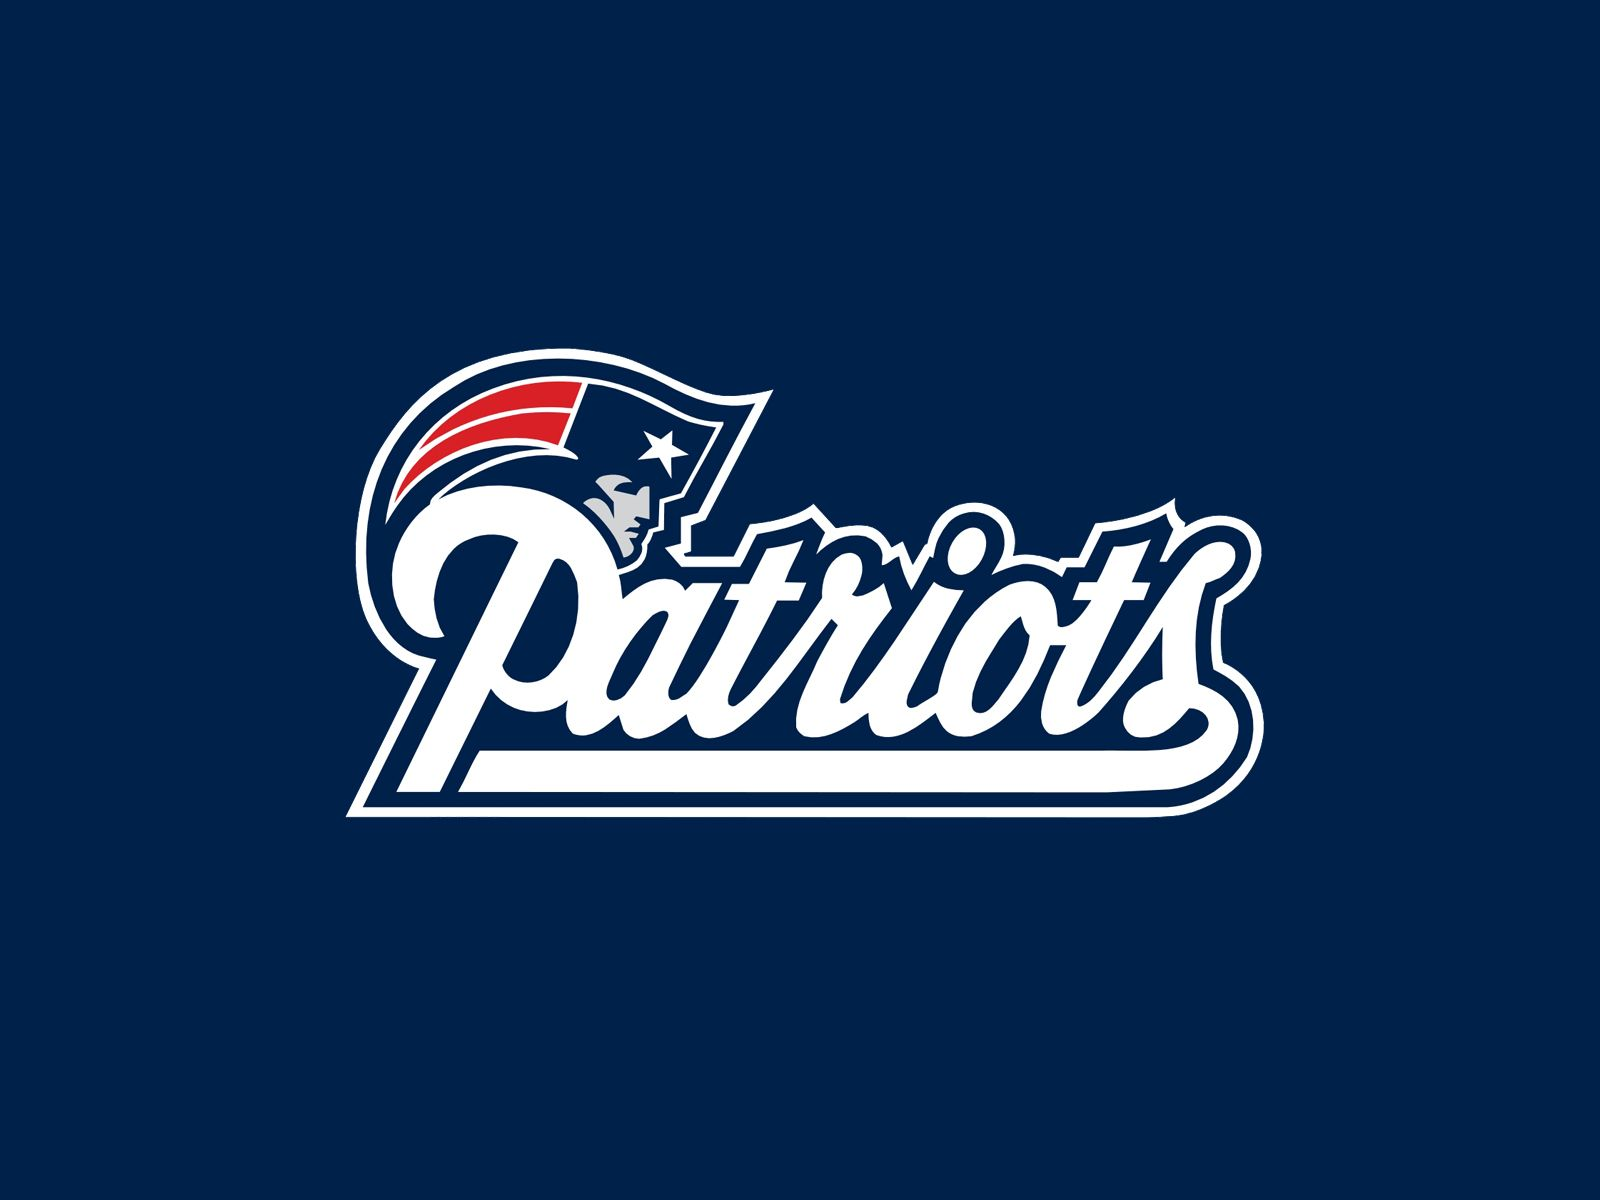 New England Patriots Logo Wallpaper 1600 X 1200 By Sportsgeekery Com New England Patriots Logo New England Patriots New England Patriots Pictures